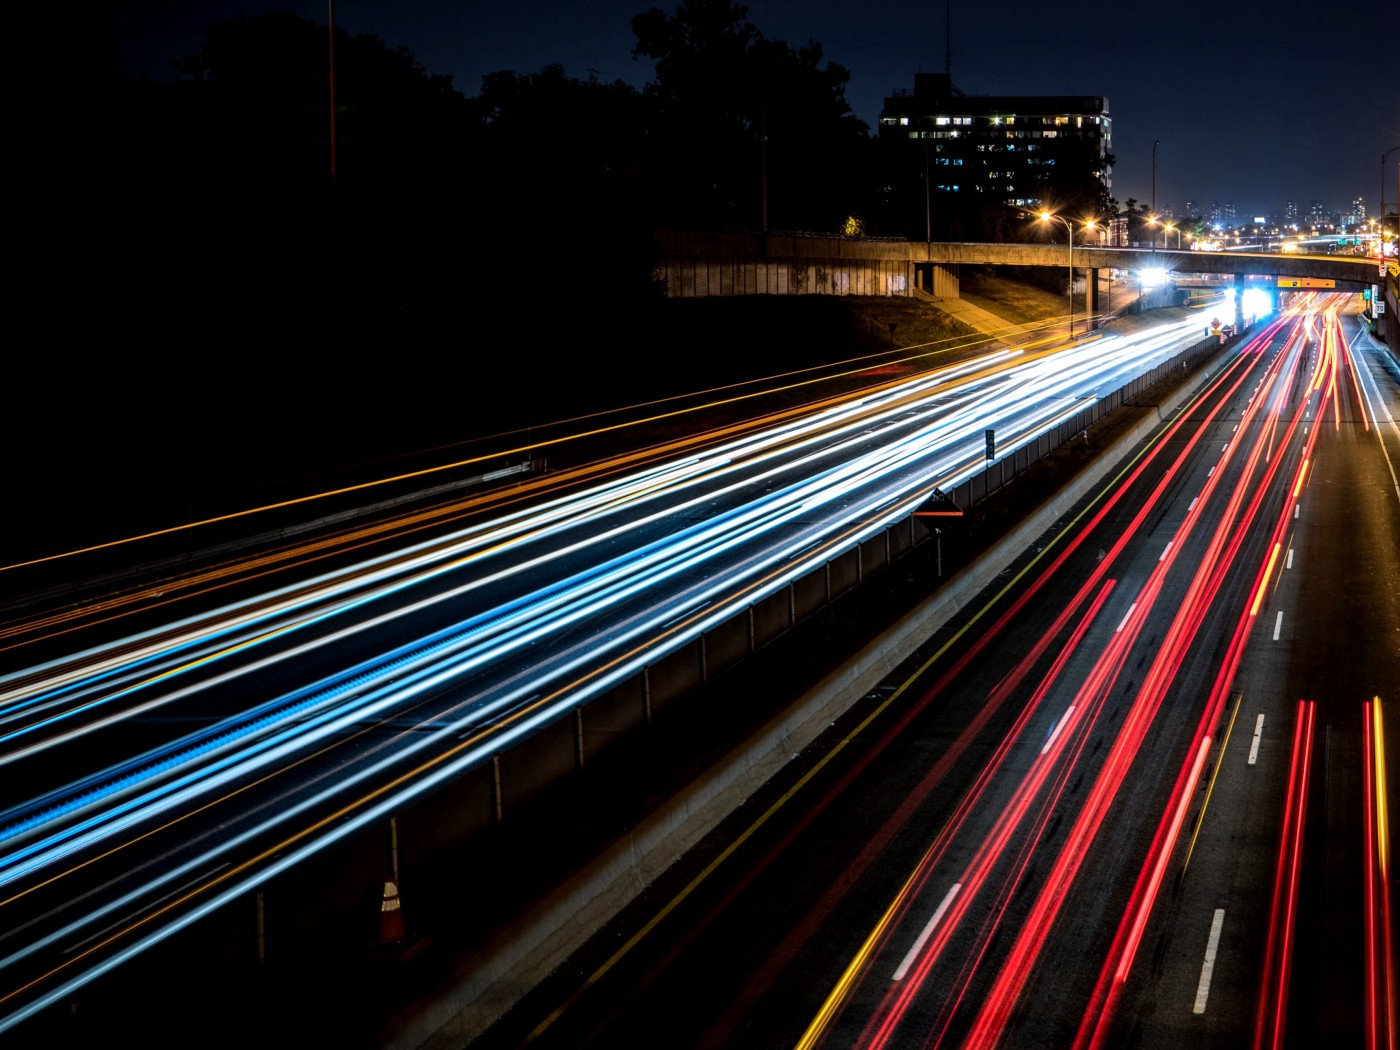 Cars going fast on the highway—blurred lights